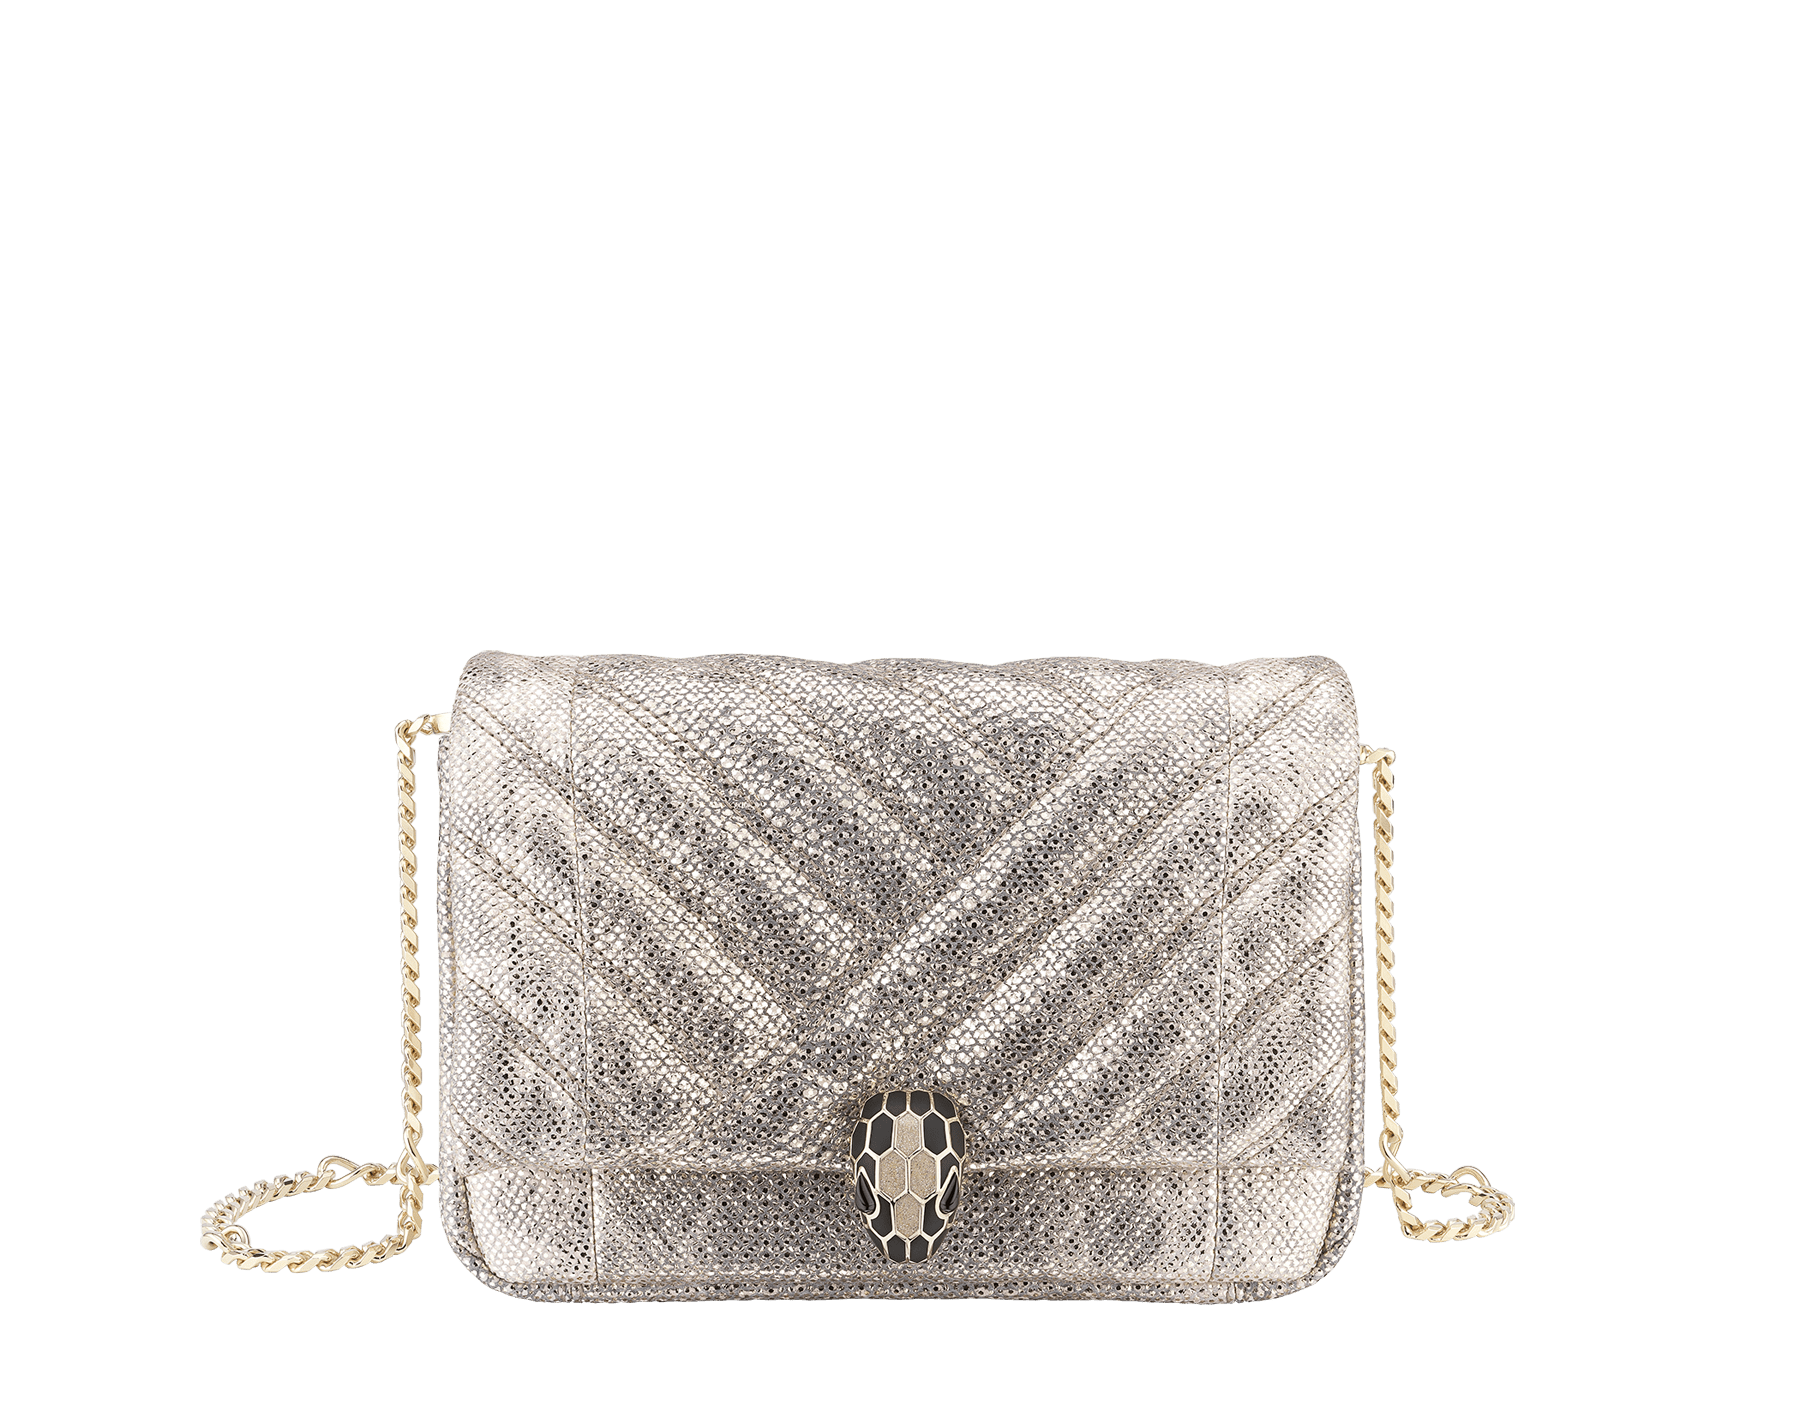 Serpenti Cabochon micro bag in soft matelassé milky opal metallic karung, with a graphic motif. Brass light gold plated tempting snake head closure in black and glitter milky opal enamel and black onyx eyes. 288807 image 1